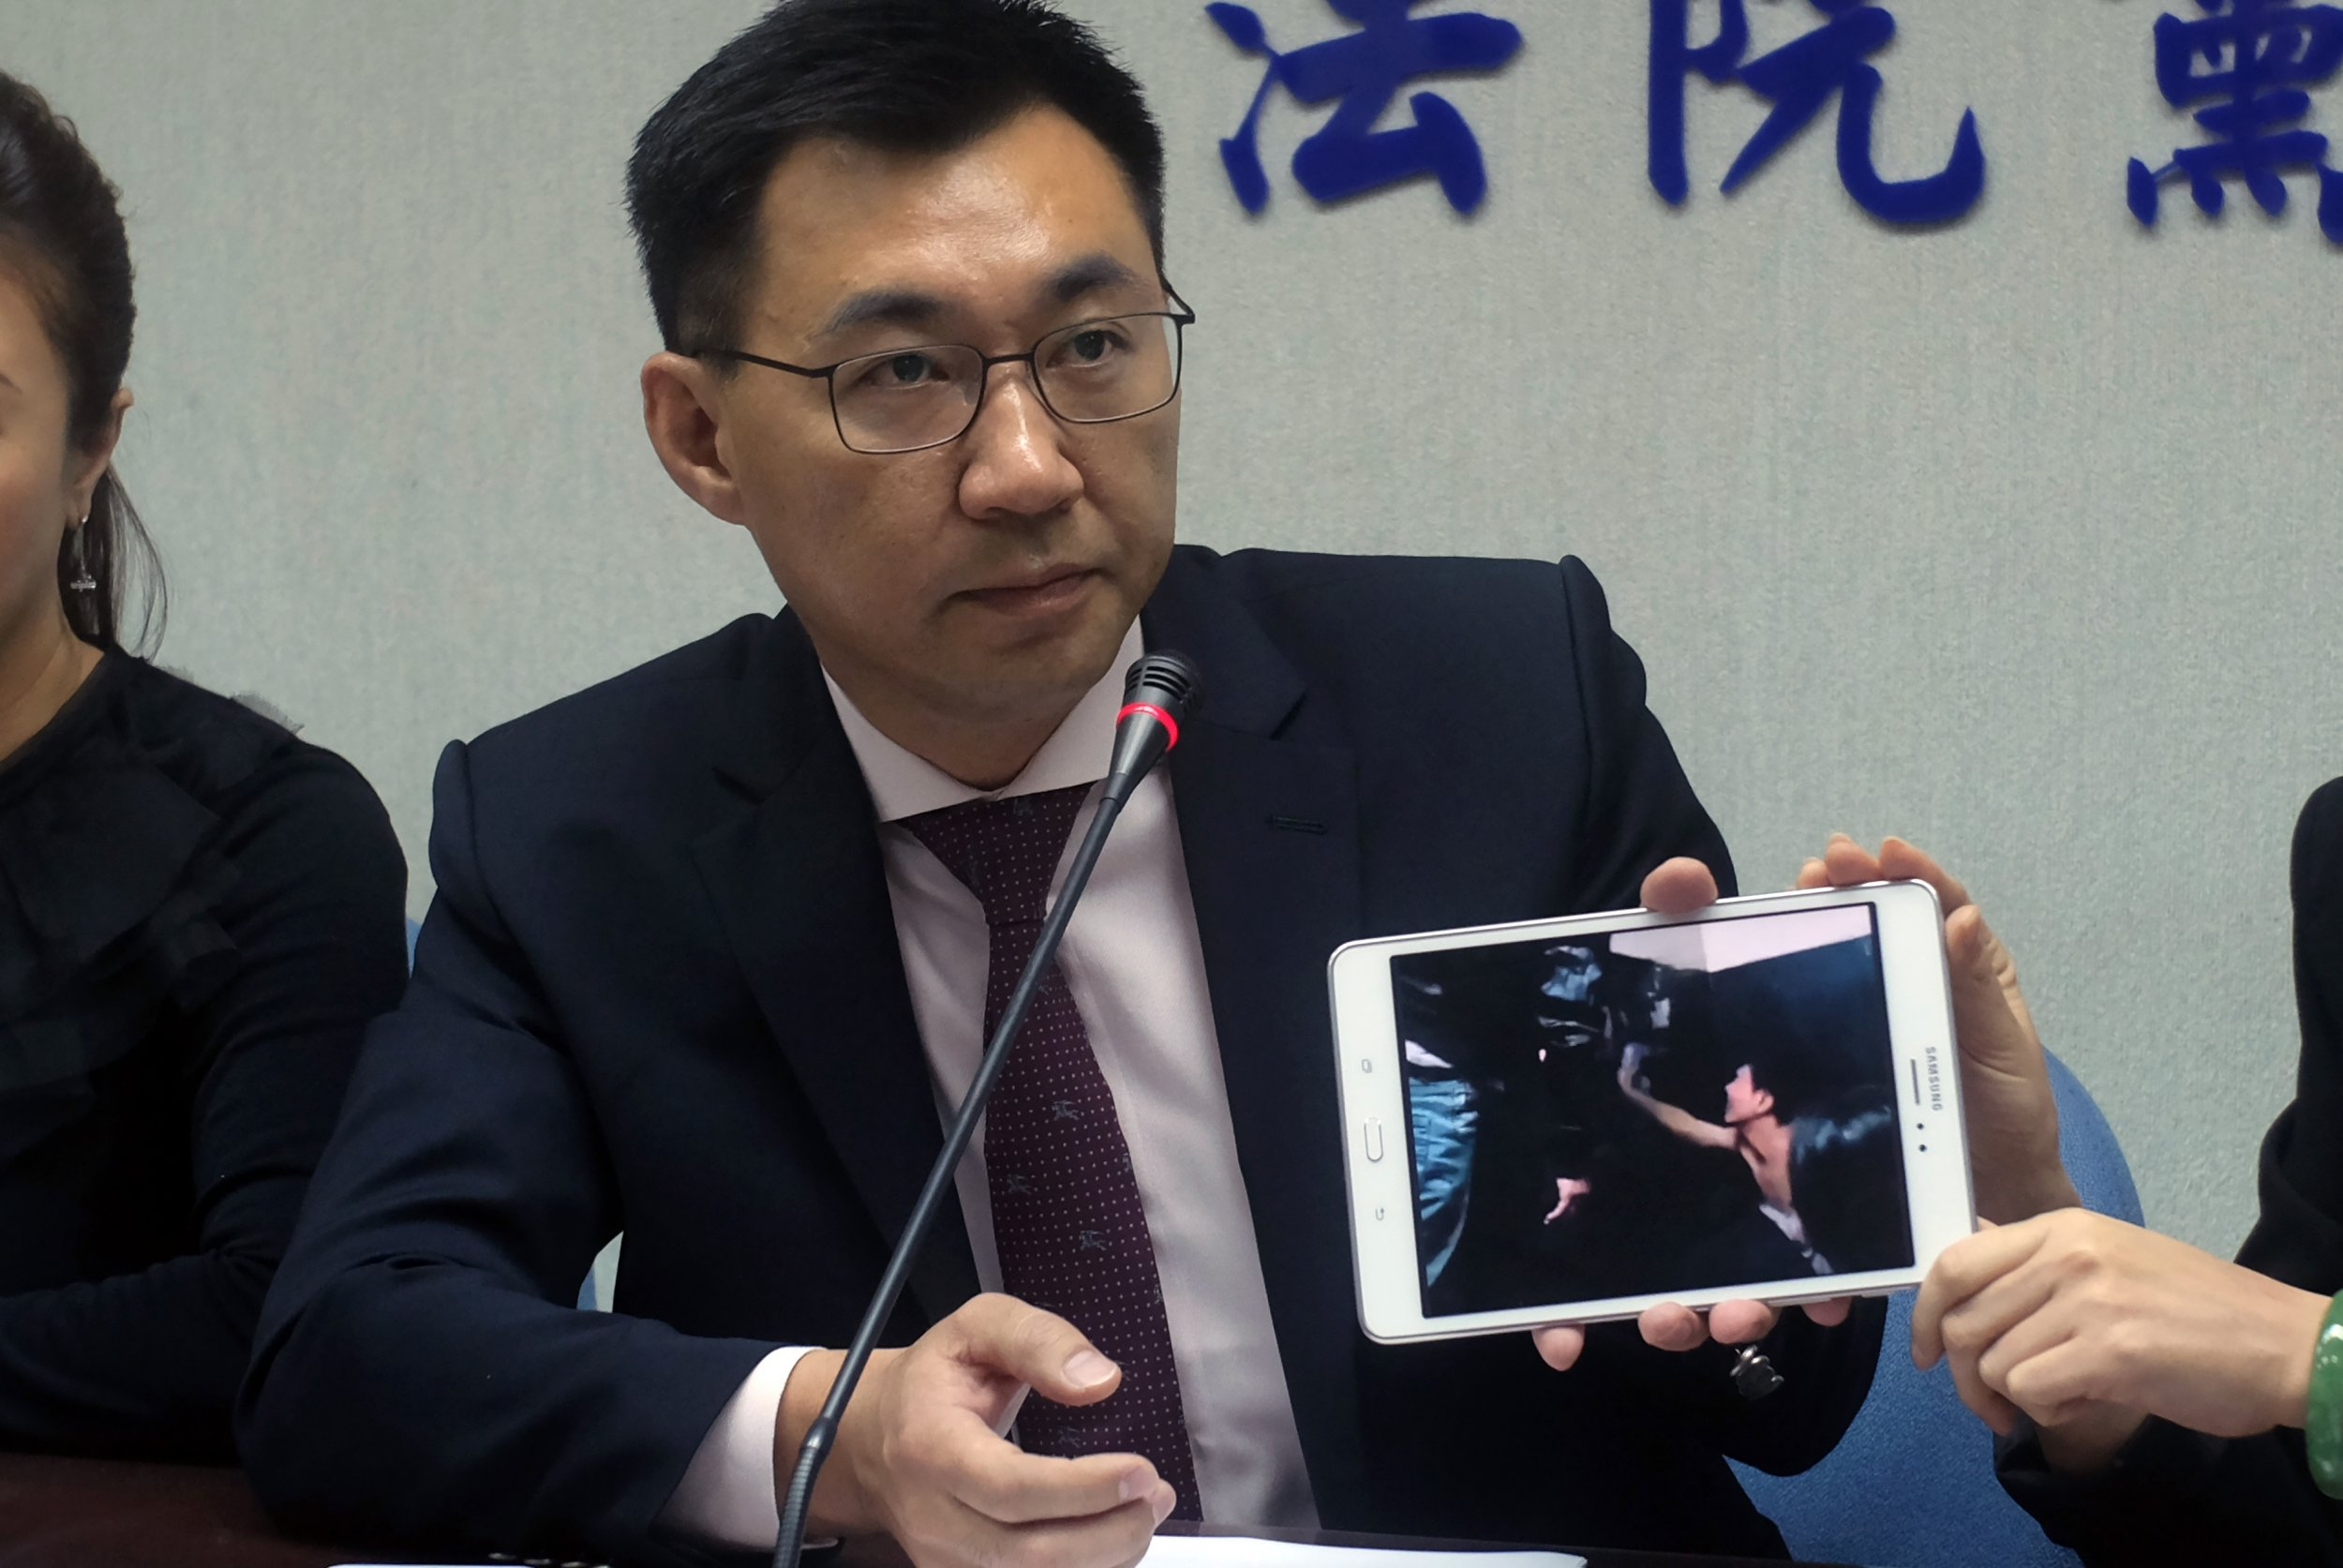 Taiwanese politician Johnny Chiang shows footage of Taiwanese detained in Kenya.